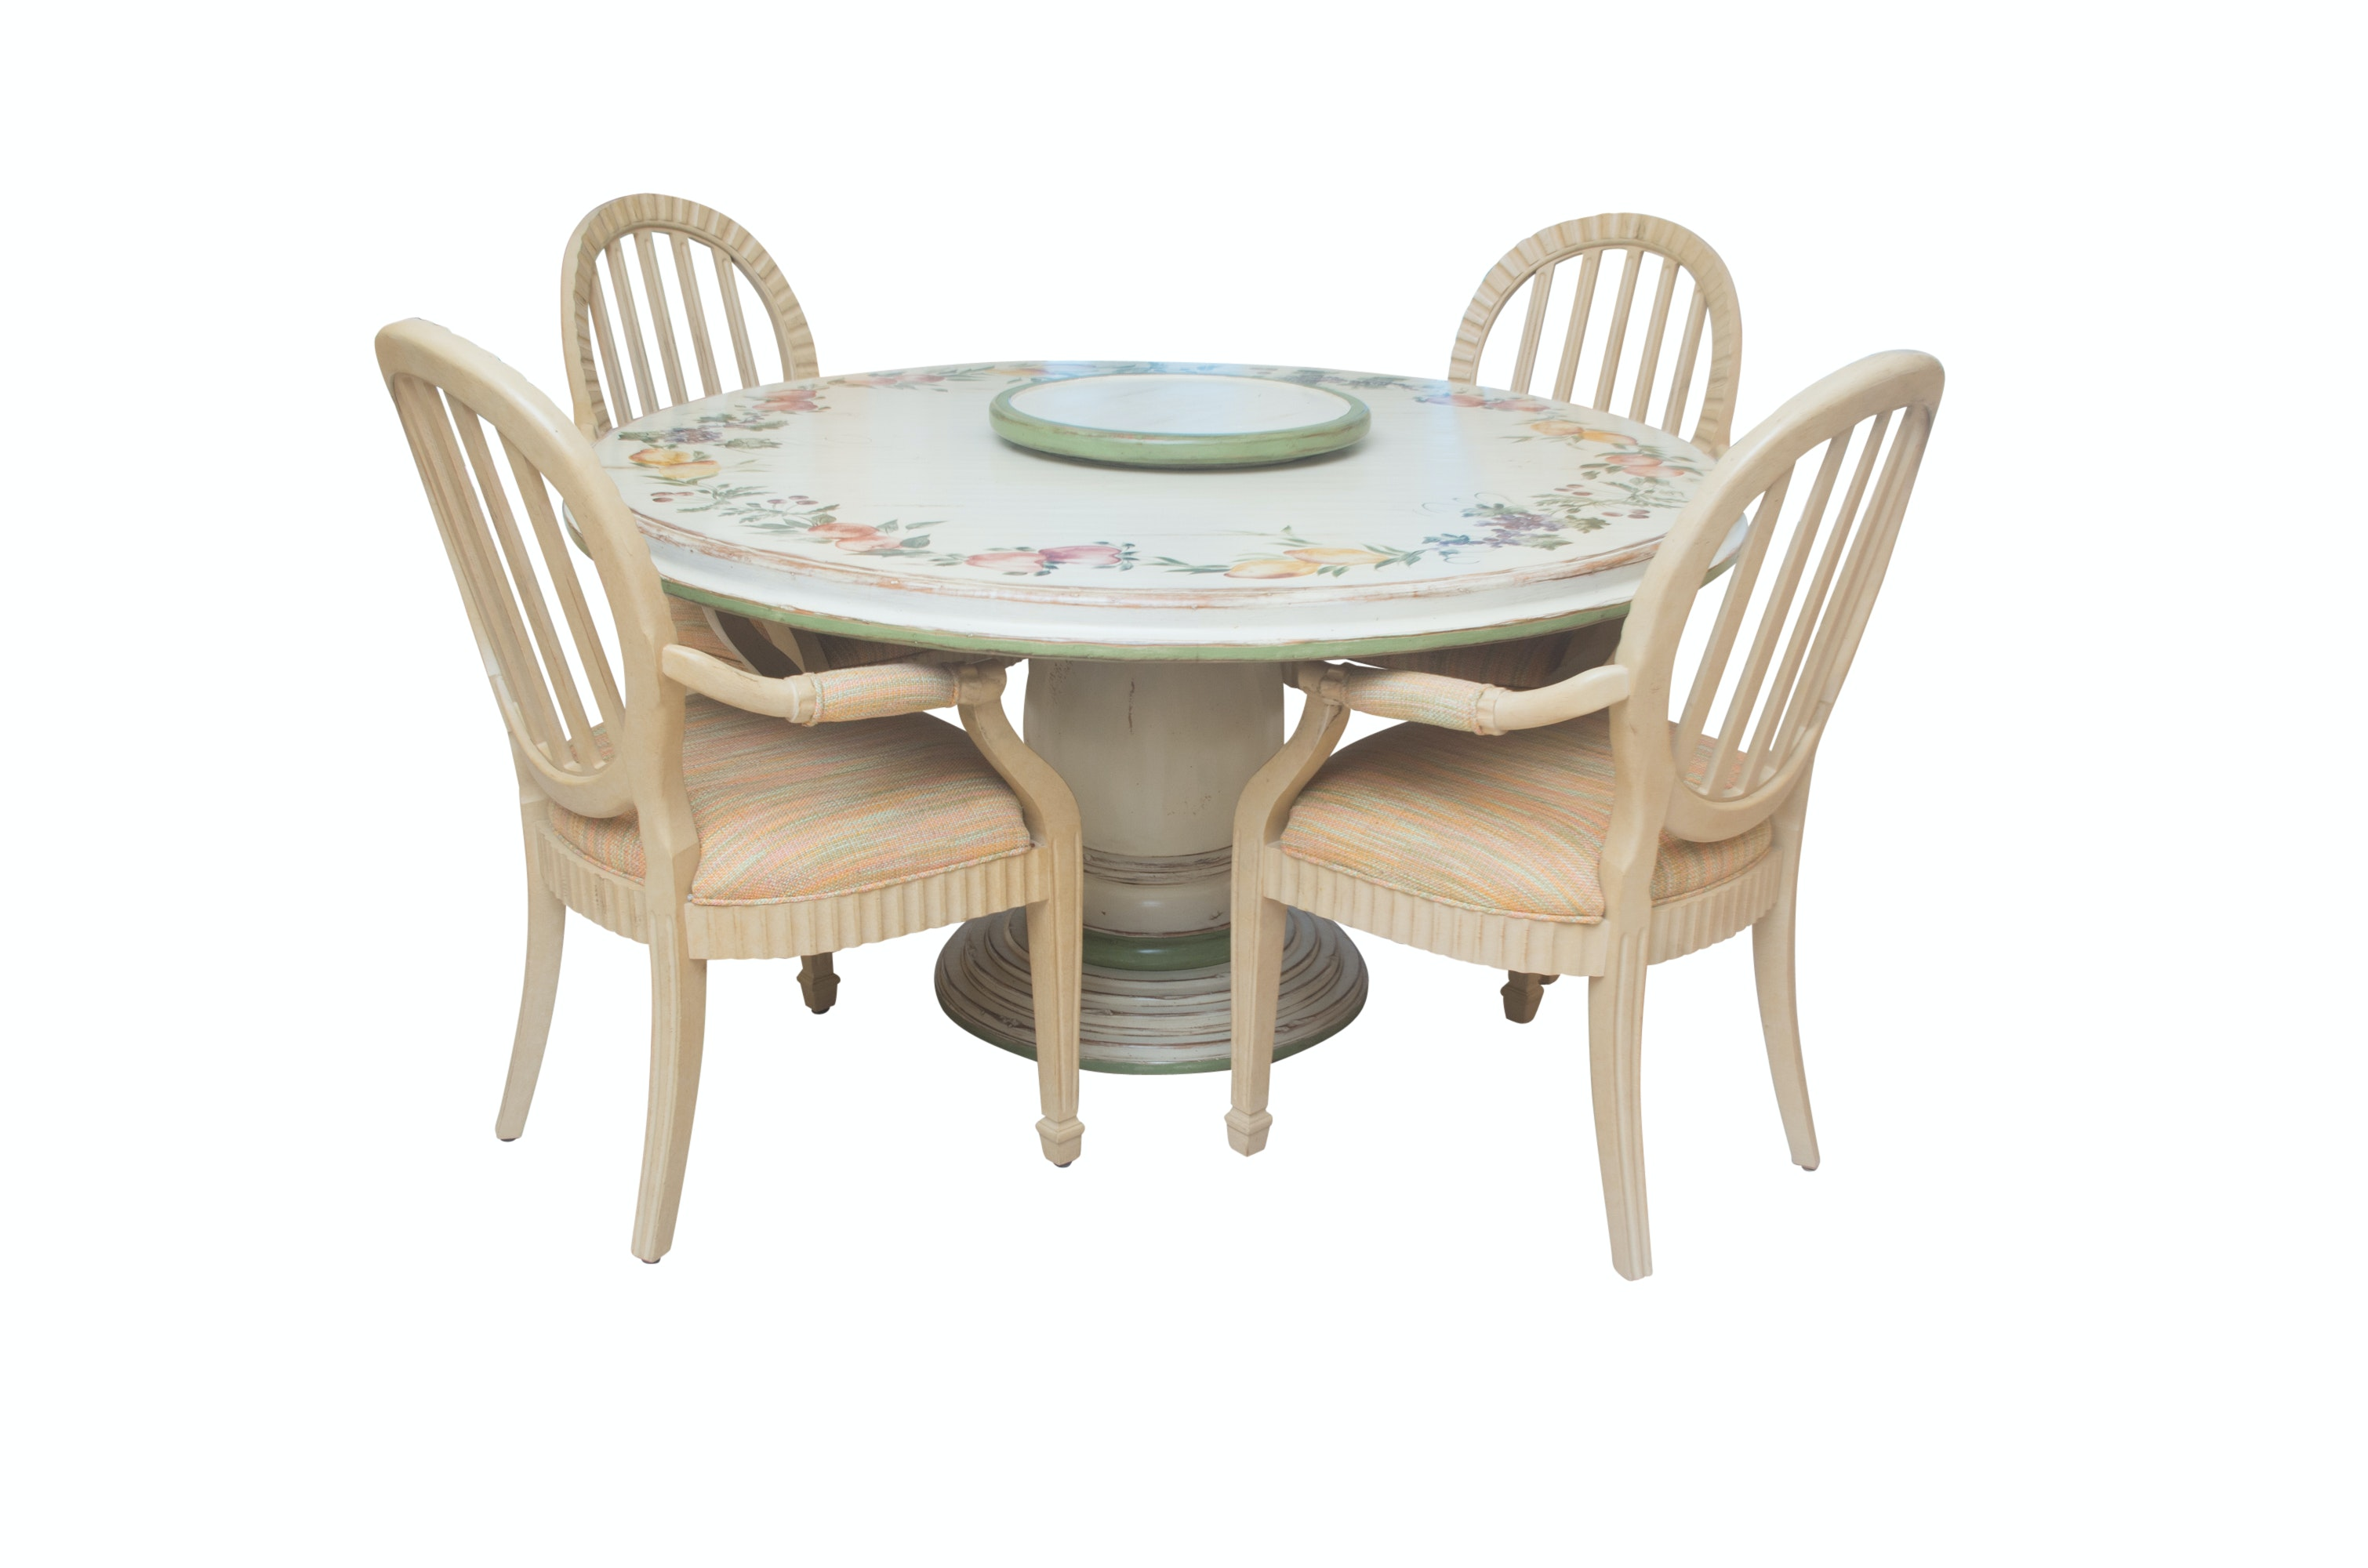 Decorative Painted Pedestal Dining Table With Four Chairs ...